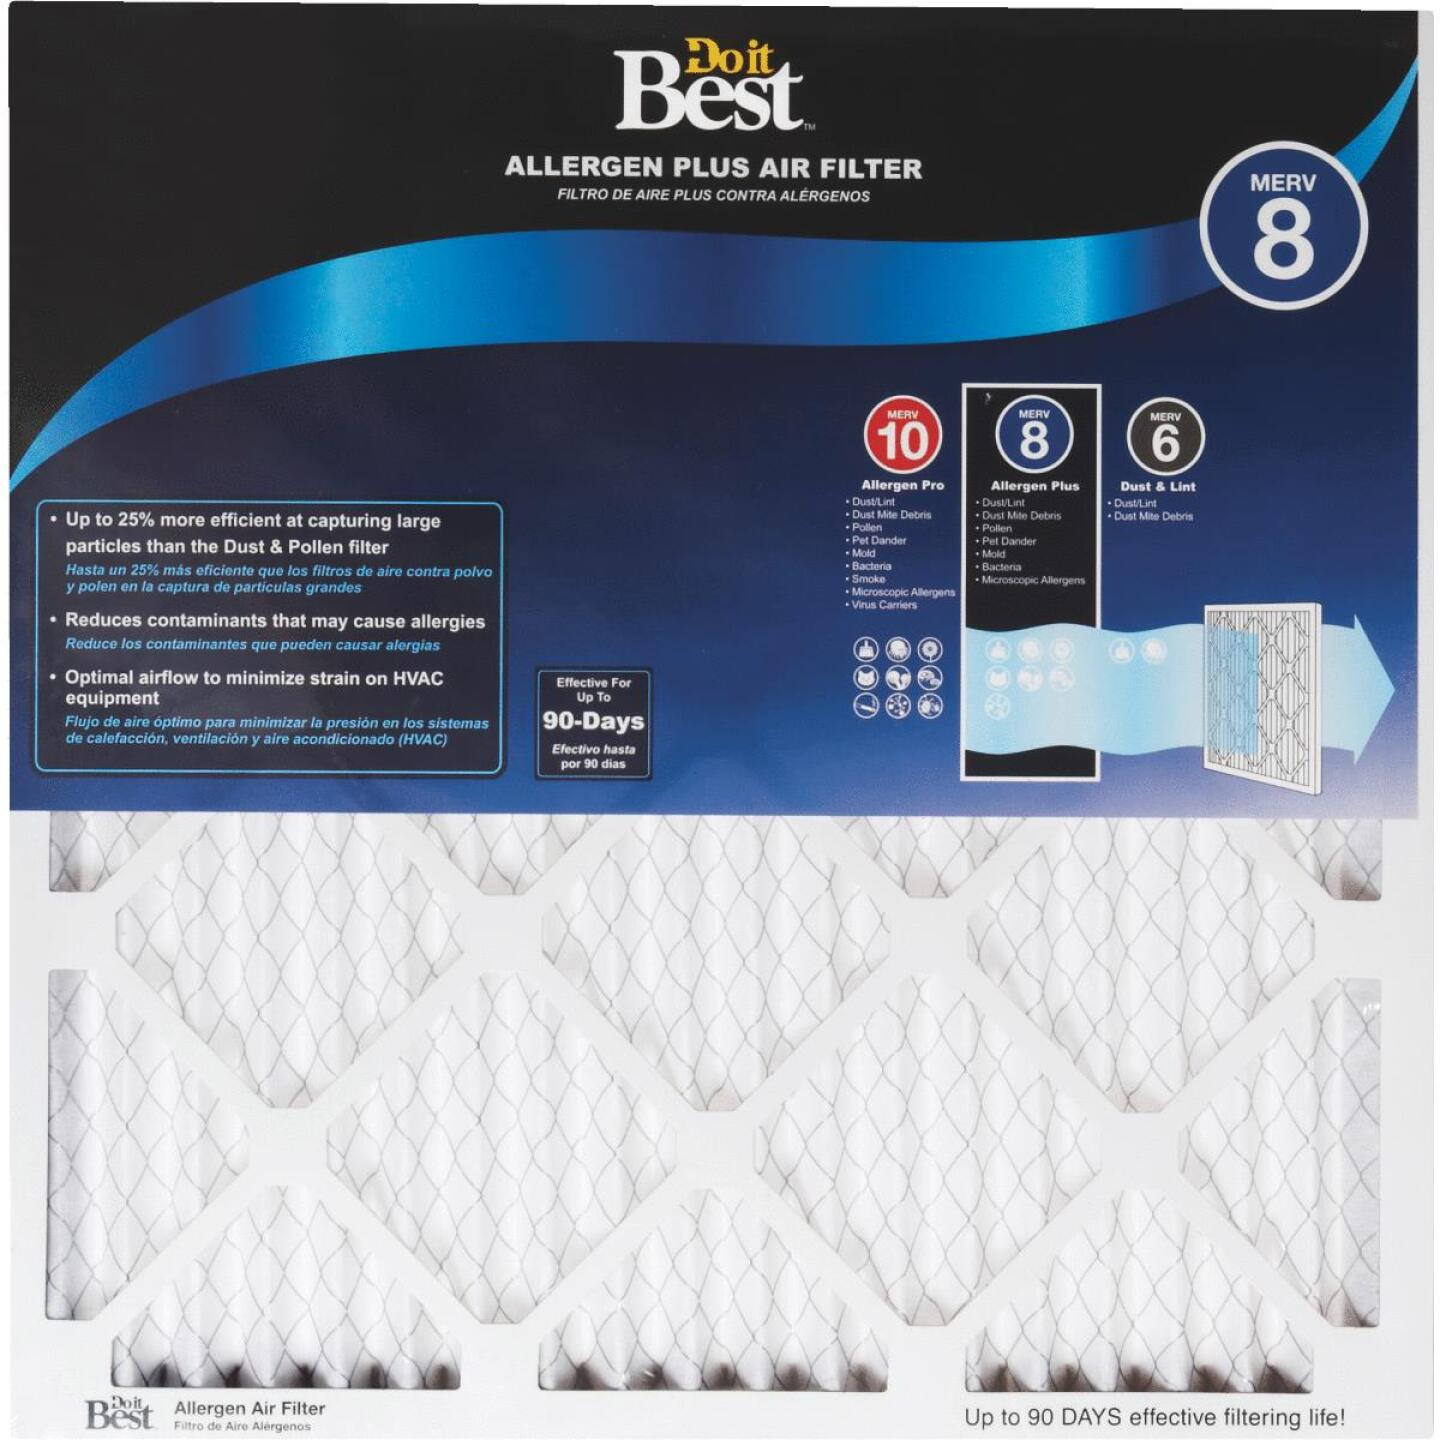 Do it Best 14 In. x 24 In. x 1 In. Allergen Plus MERV 8 Furnace Filter Image 1